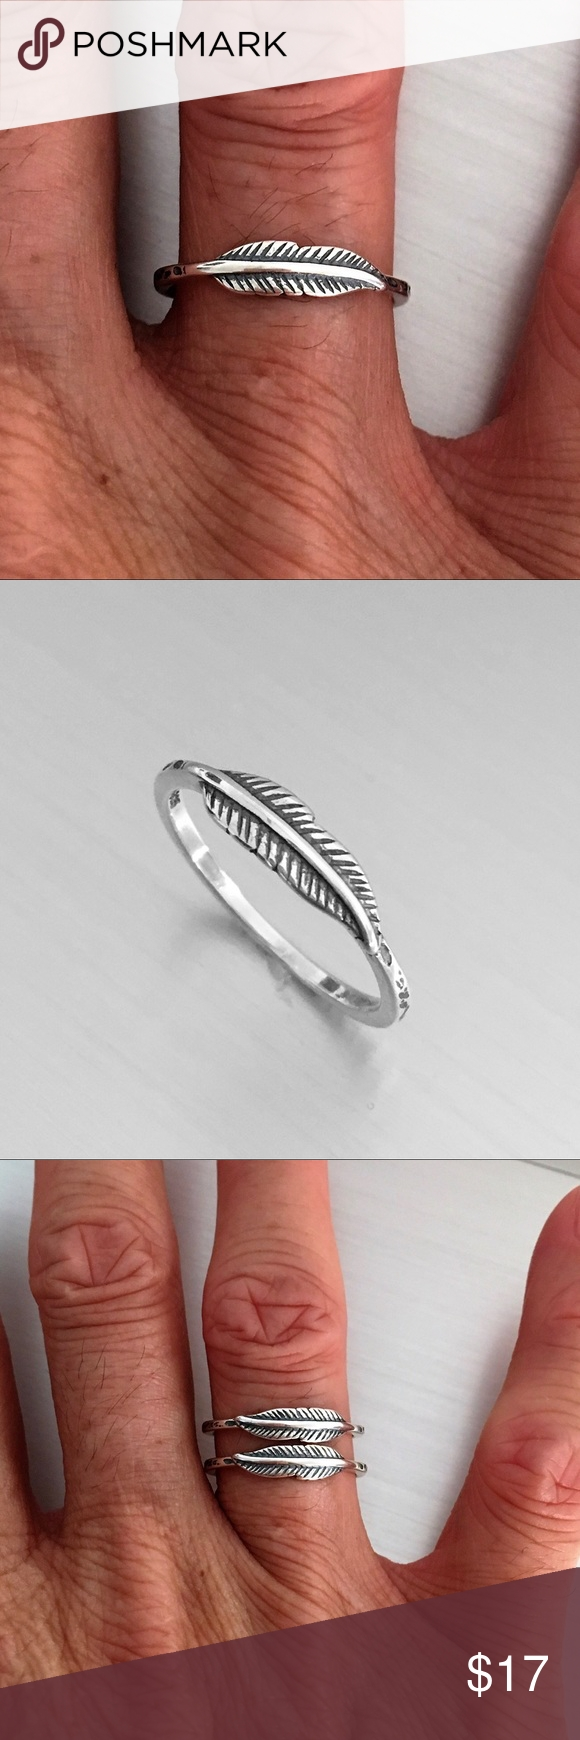 Sterling Silver Tiny Feather Ring | Feather Ring, Toe Rings And Pertaining To Most Up To Date Feather Toe Rings (View 14 of 15)